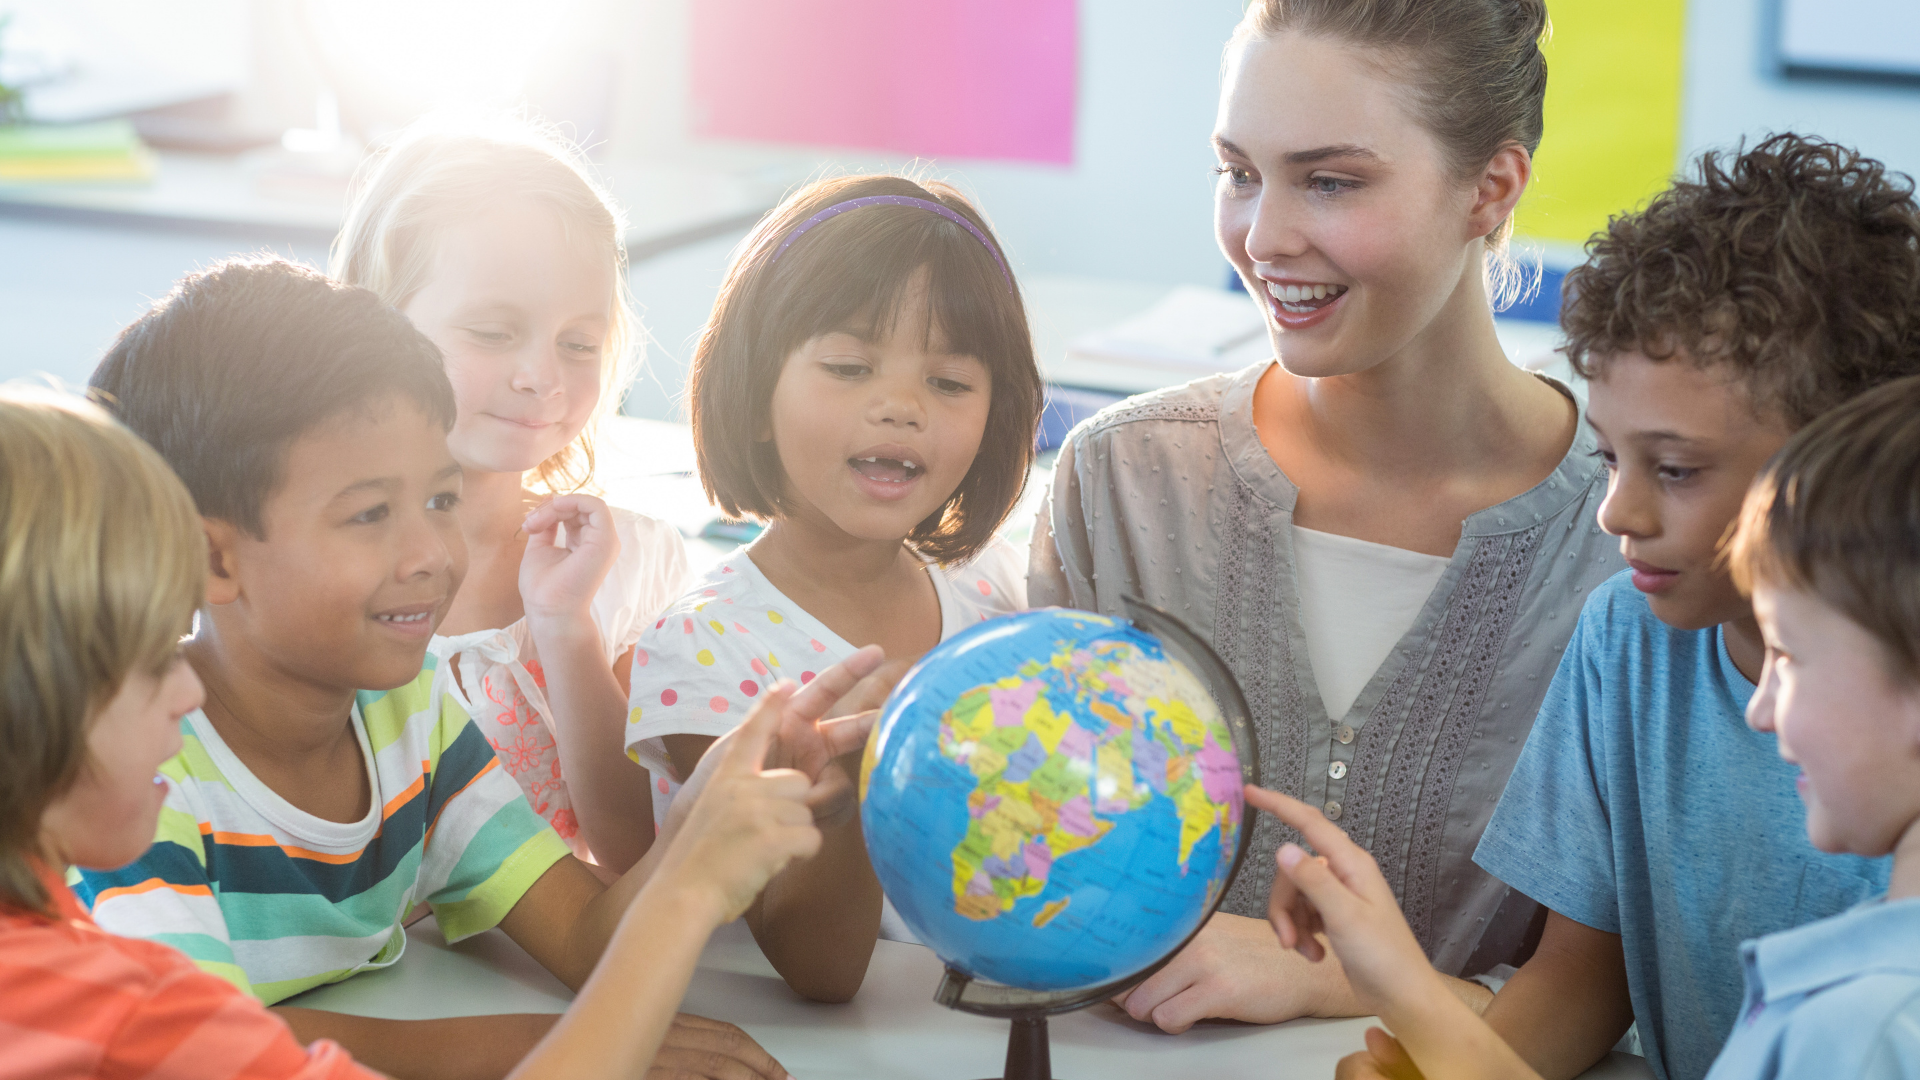 Image shows a teacher sitting with students while interacting with a globe.